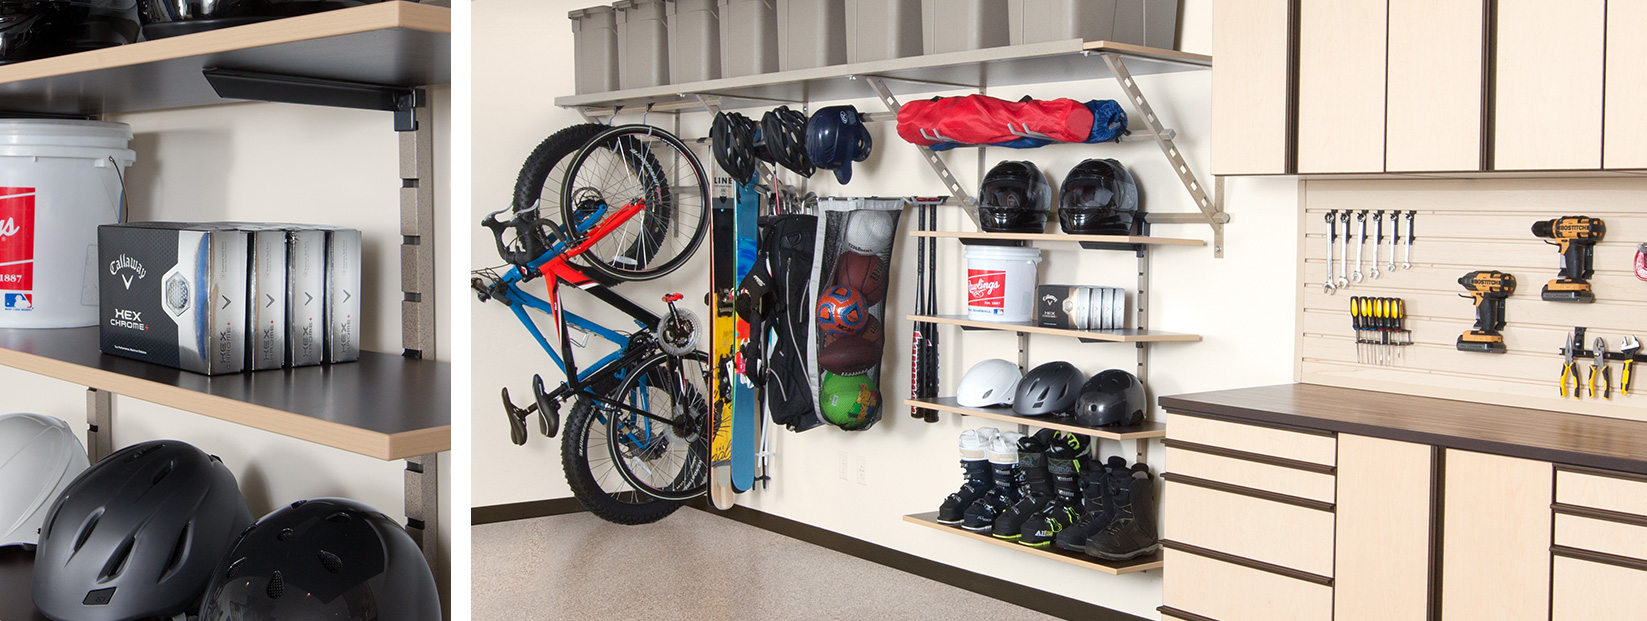 Garage Shelving System Miami